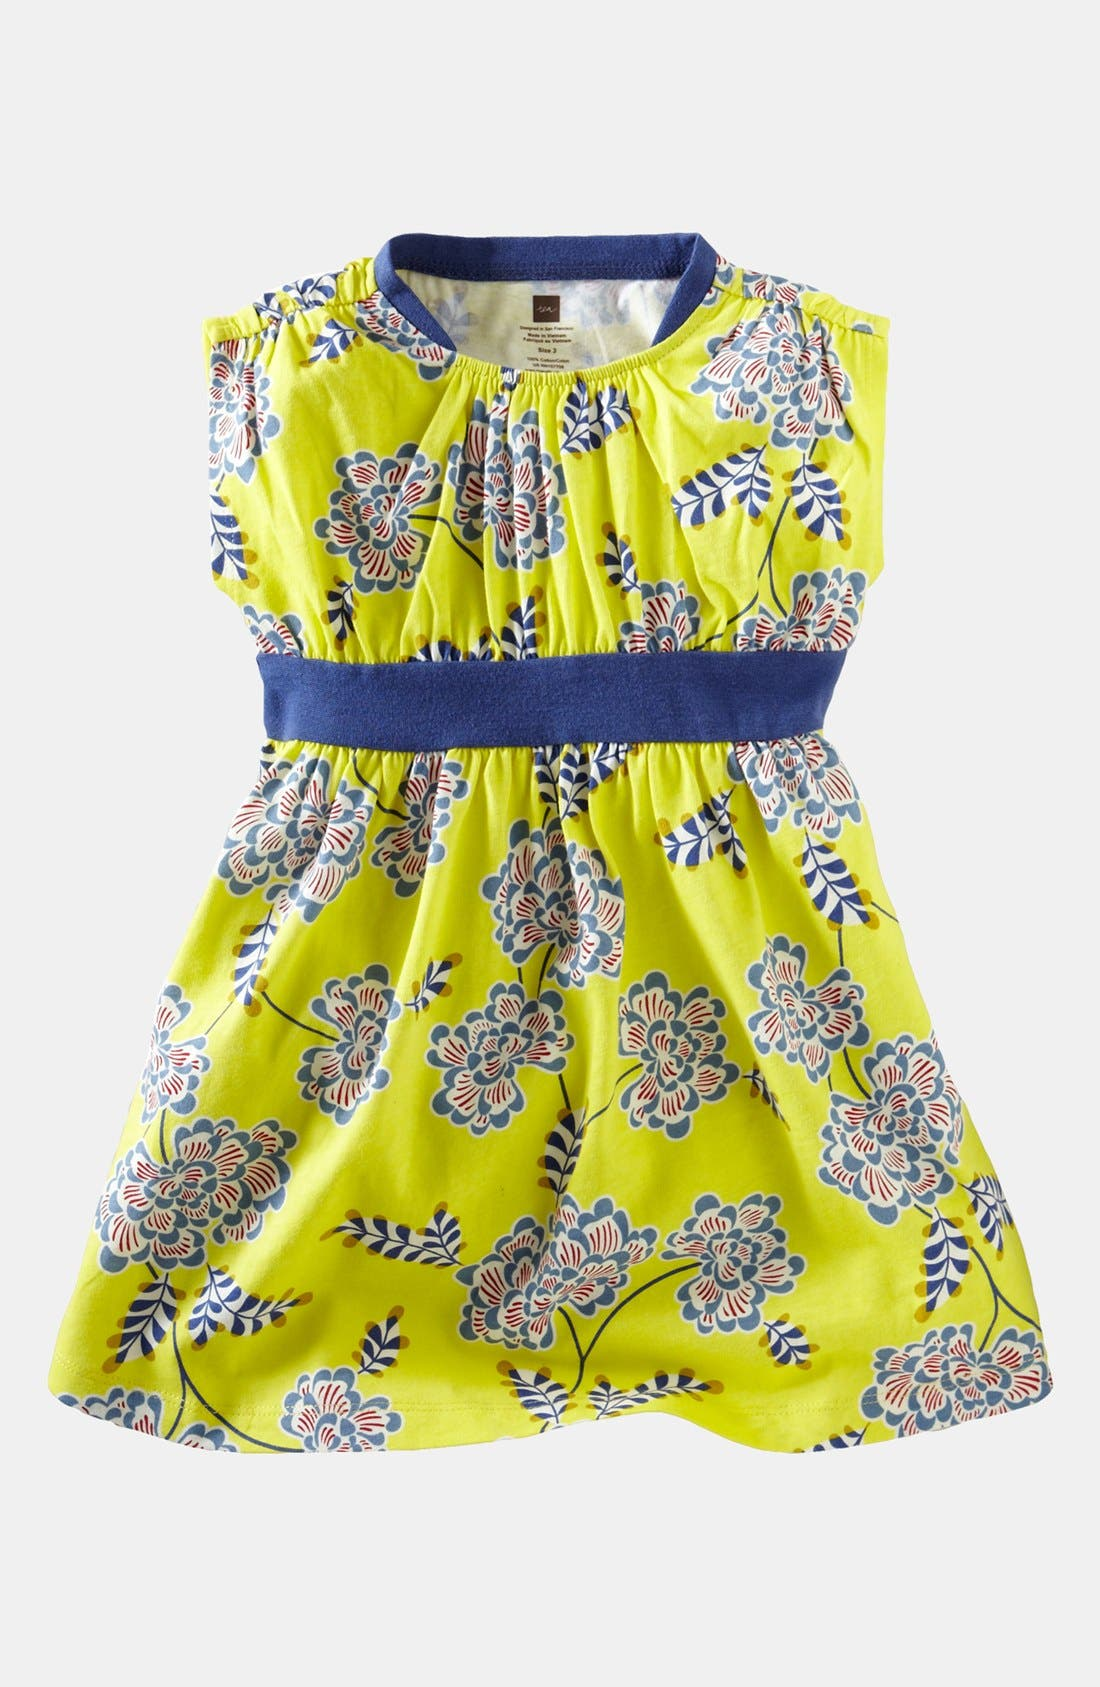 Main Image - Tea Collection 'Chrysanthemum' Banded Dress (Toddler Girls)